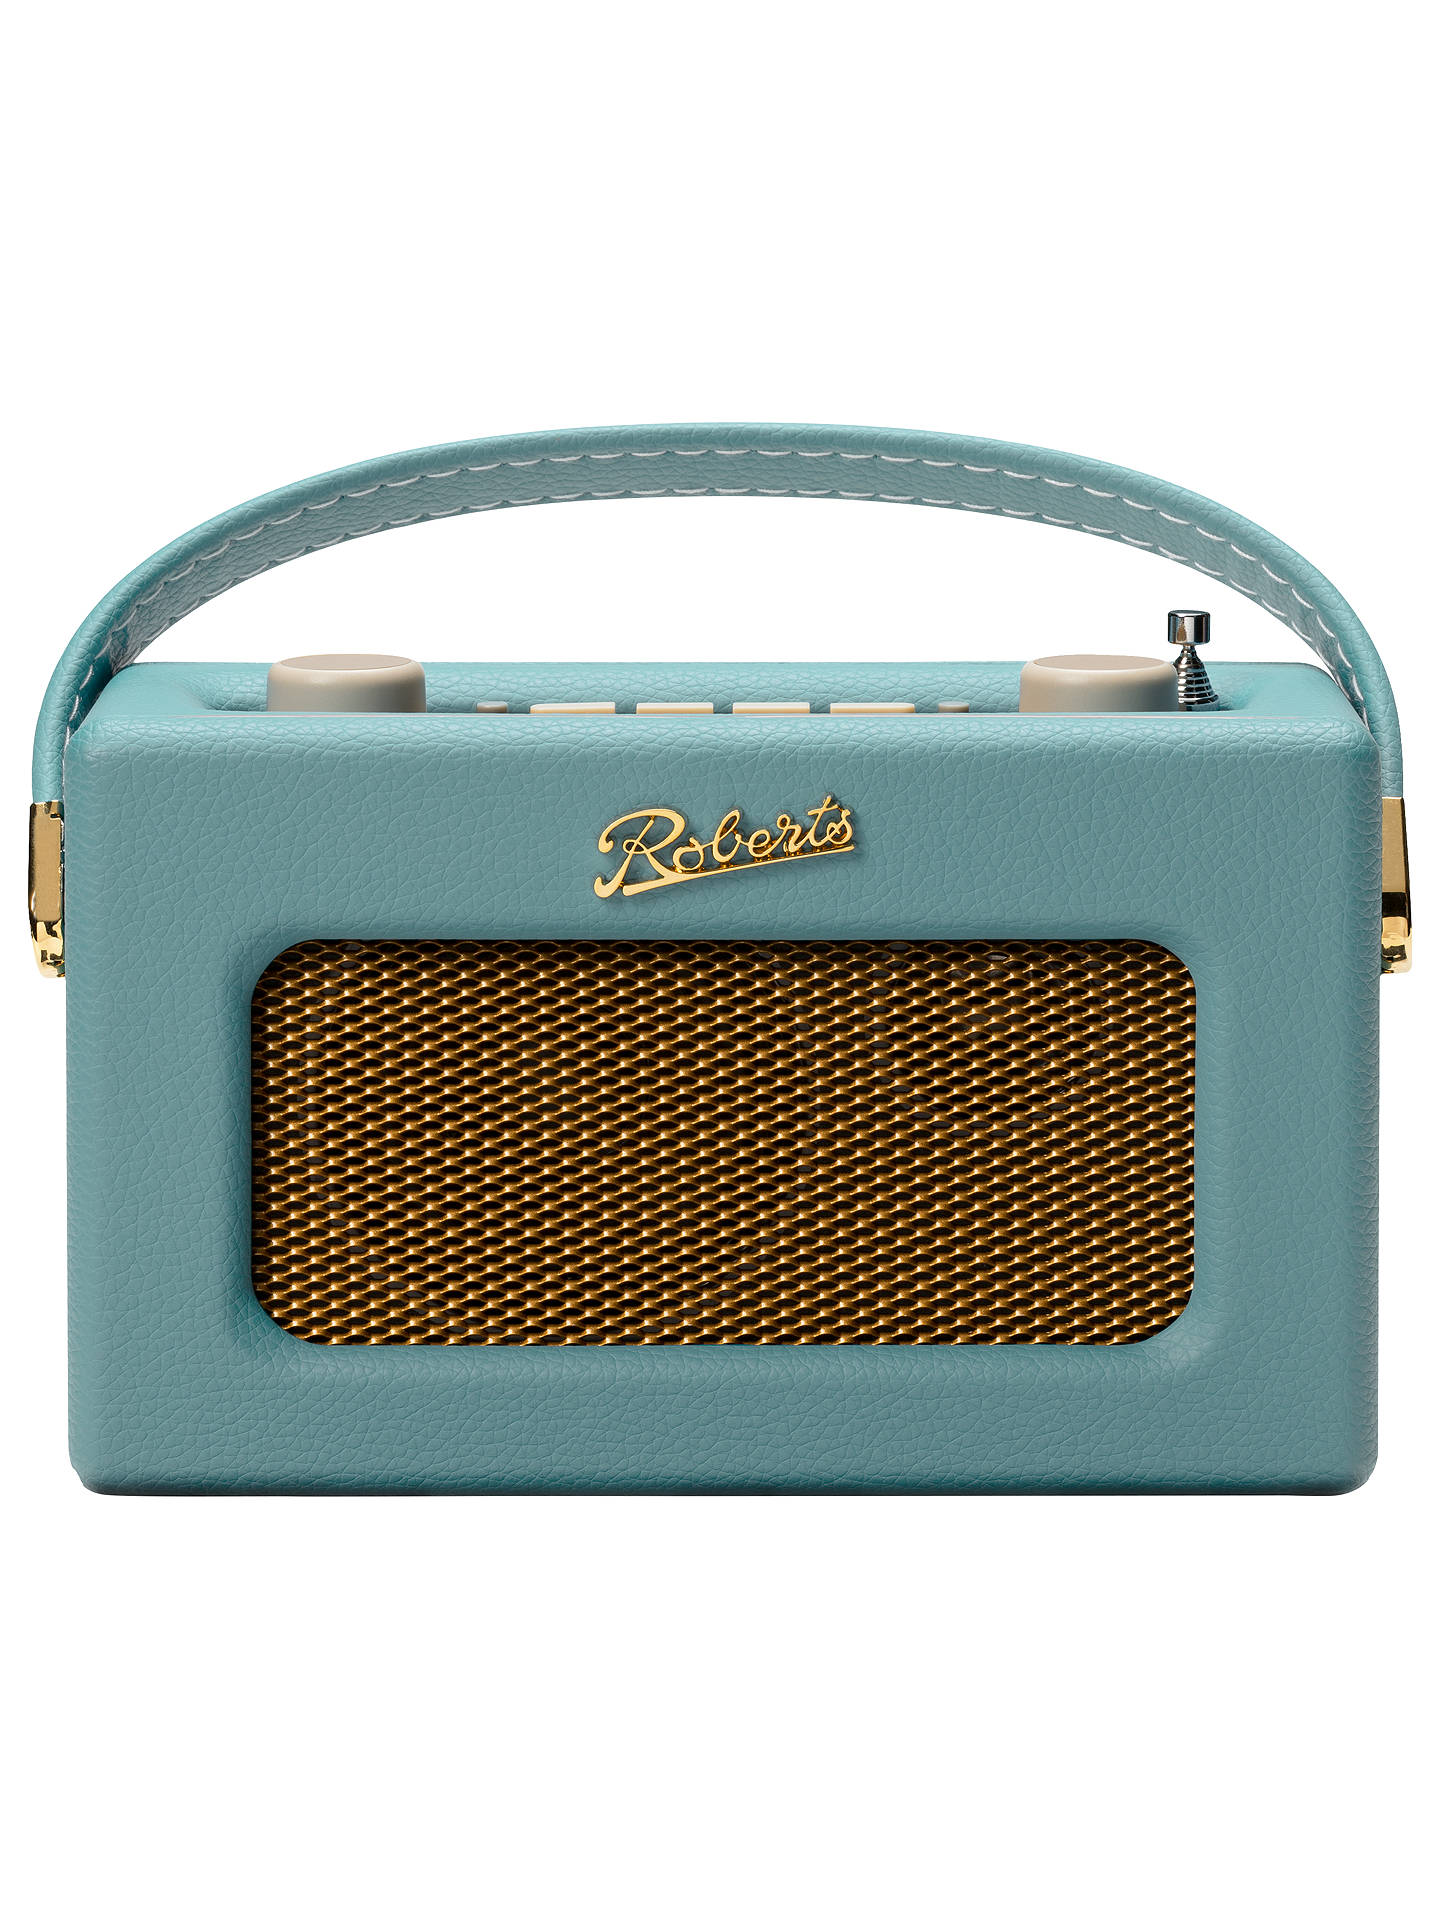 Buy ROBERTS Revival Uno DAB/DAB+/FM Digital Radio with Alarm, Duck Egg Online at johnlewis.com